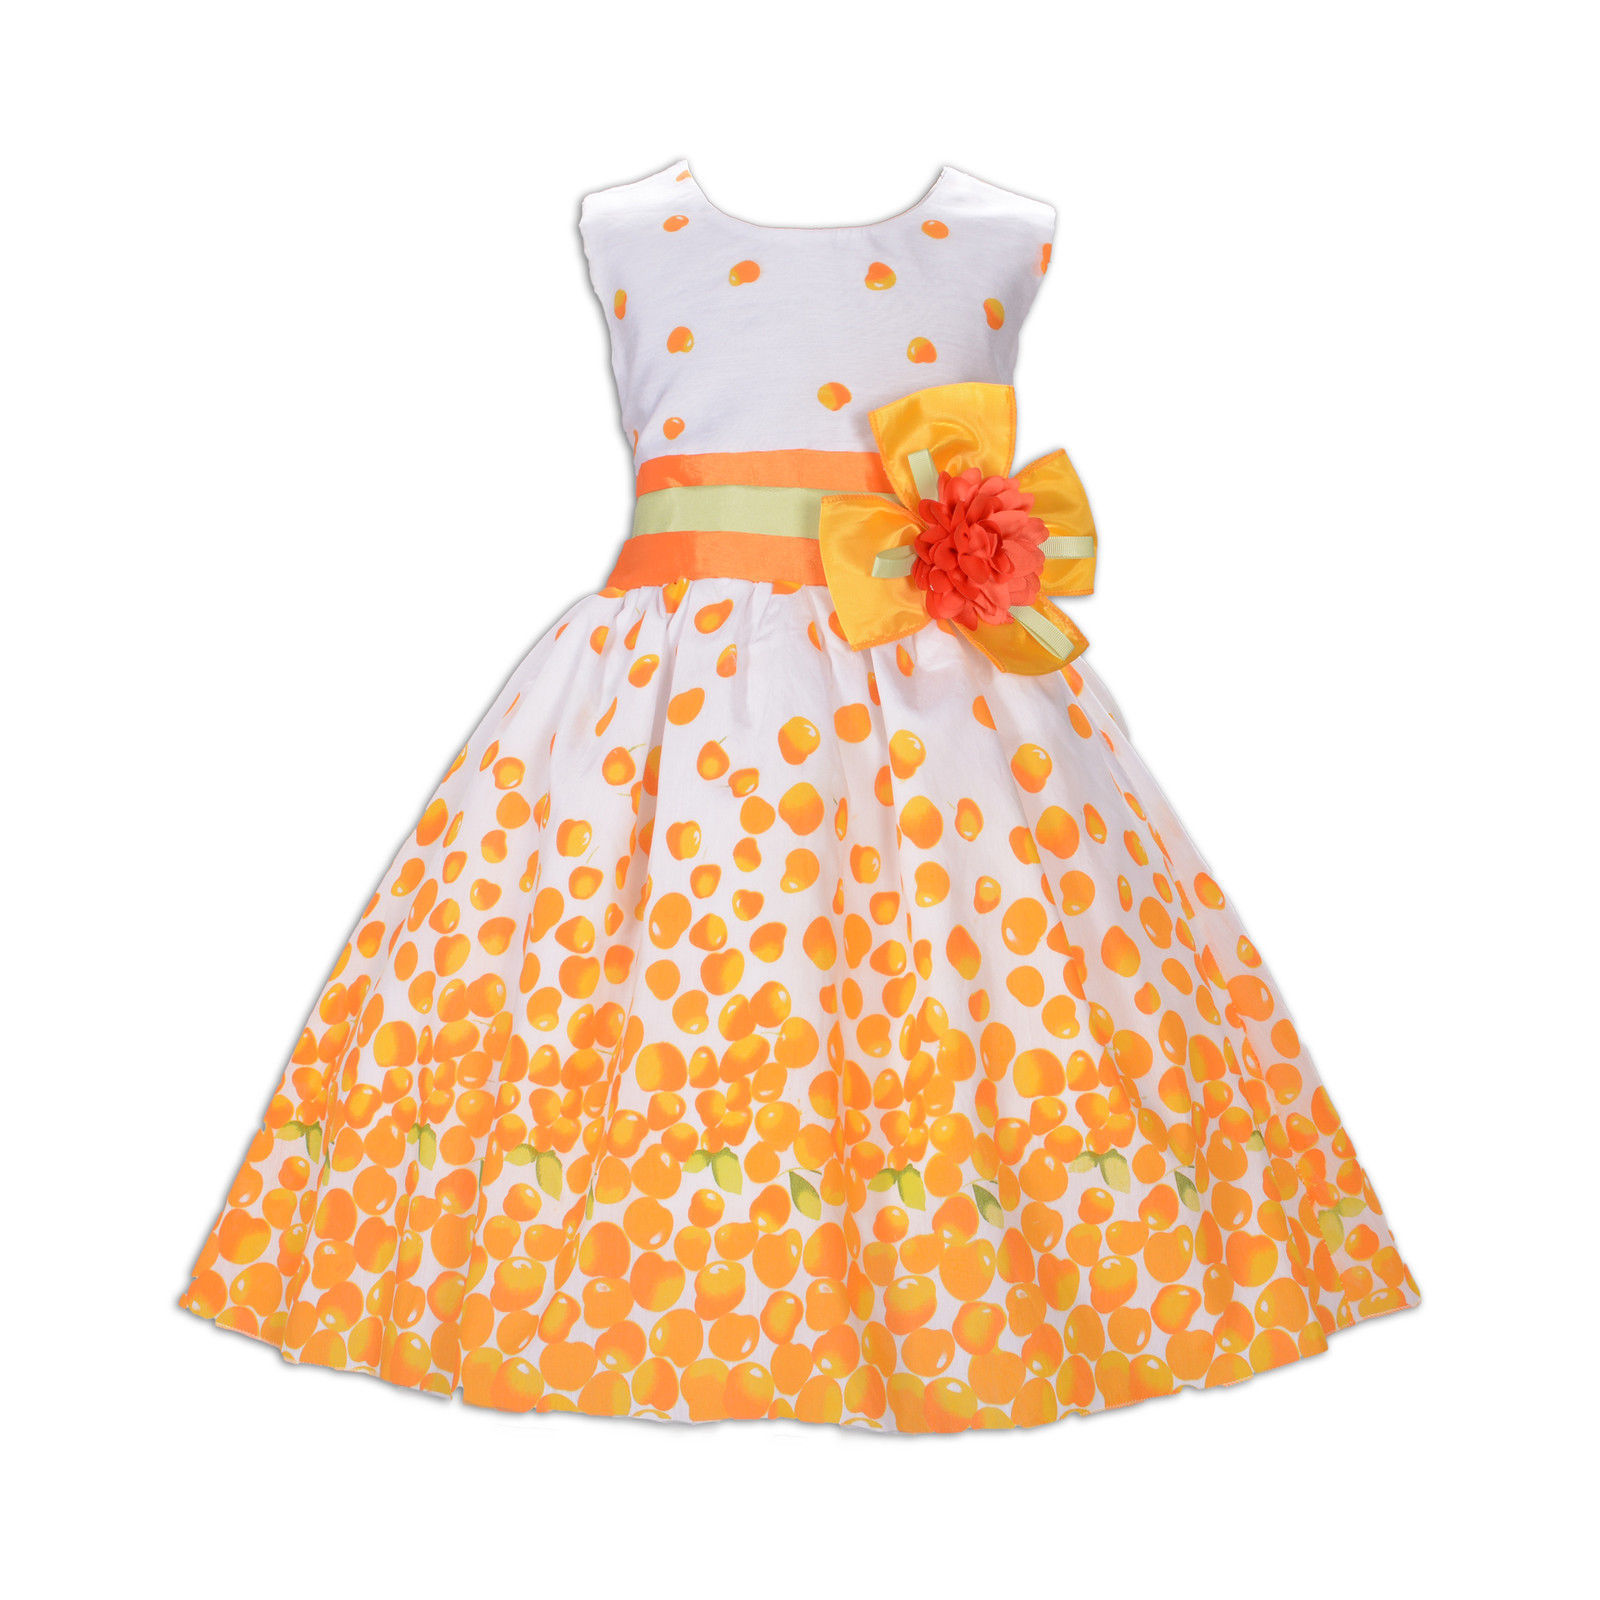 New Girls Cherry Party Dress in Orange Hot Pink Blue Yellow 5 6 7 8 9 10 Years